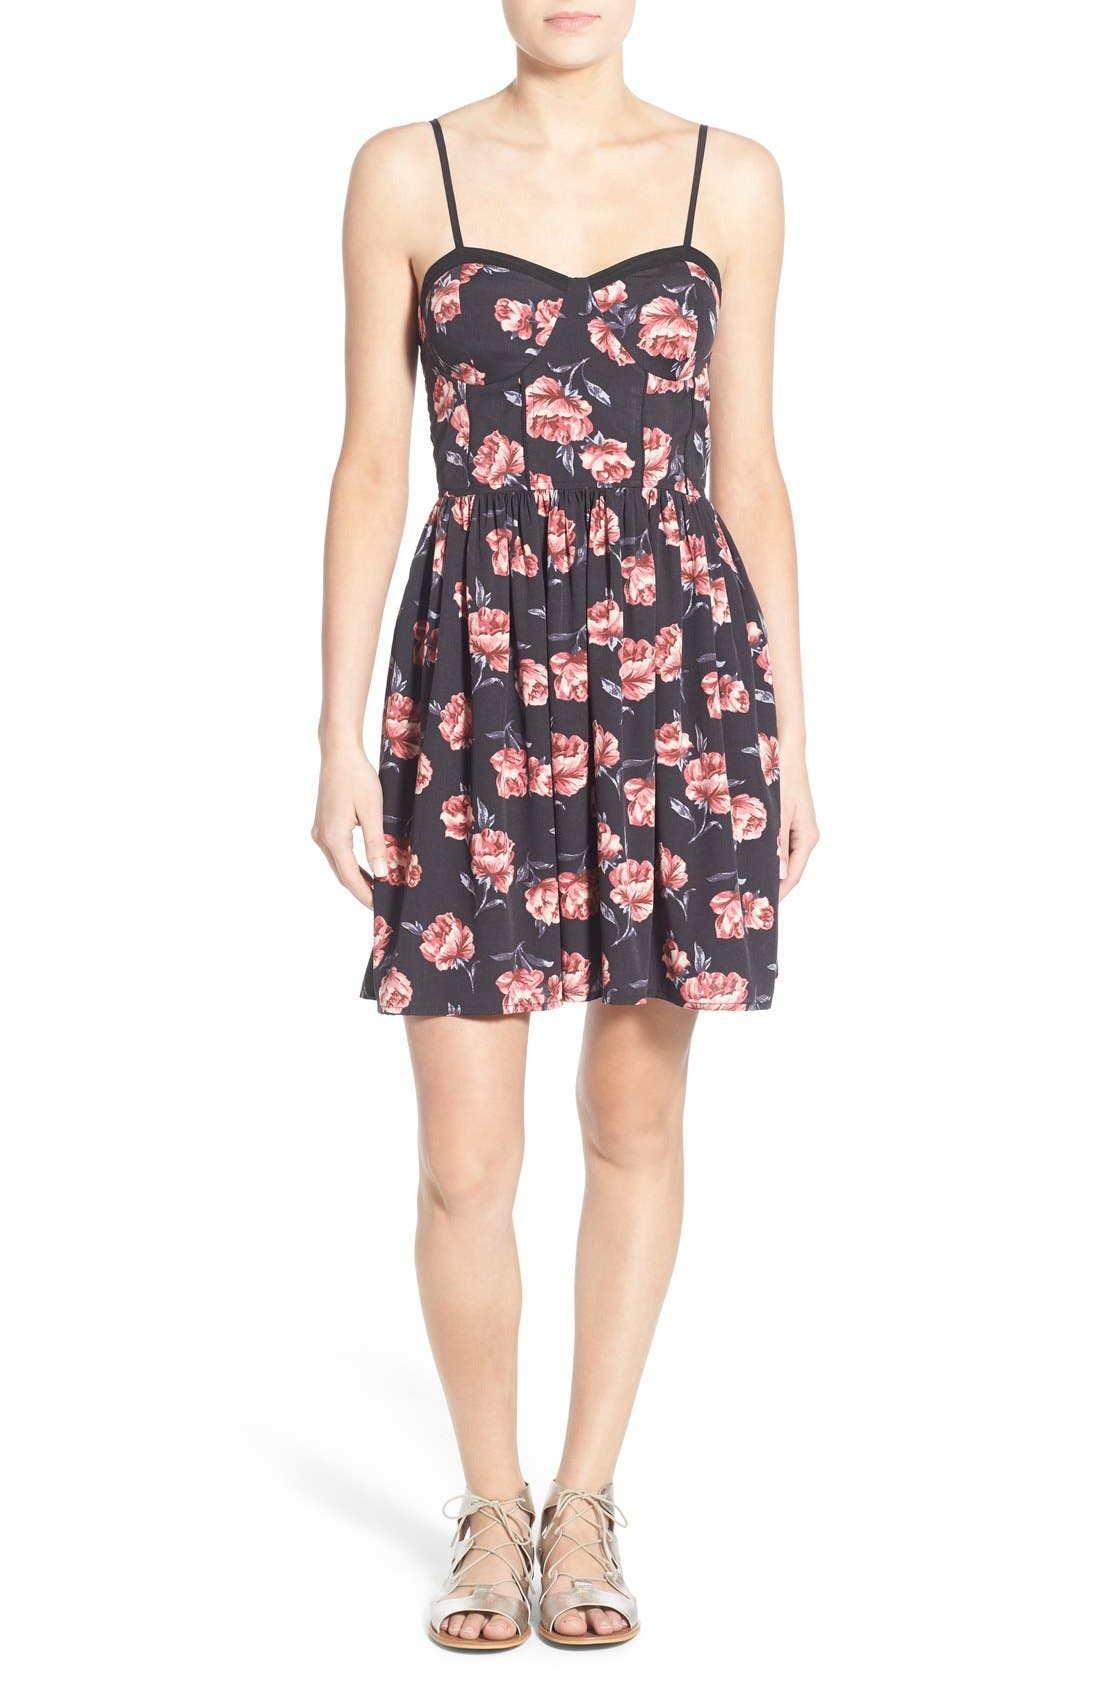 Alternate Image 1 Selected - Band of Gypsies Floral Print Skater Dress